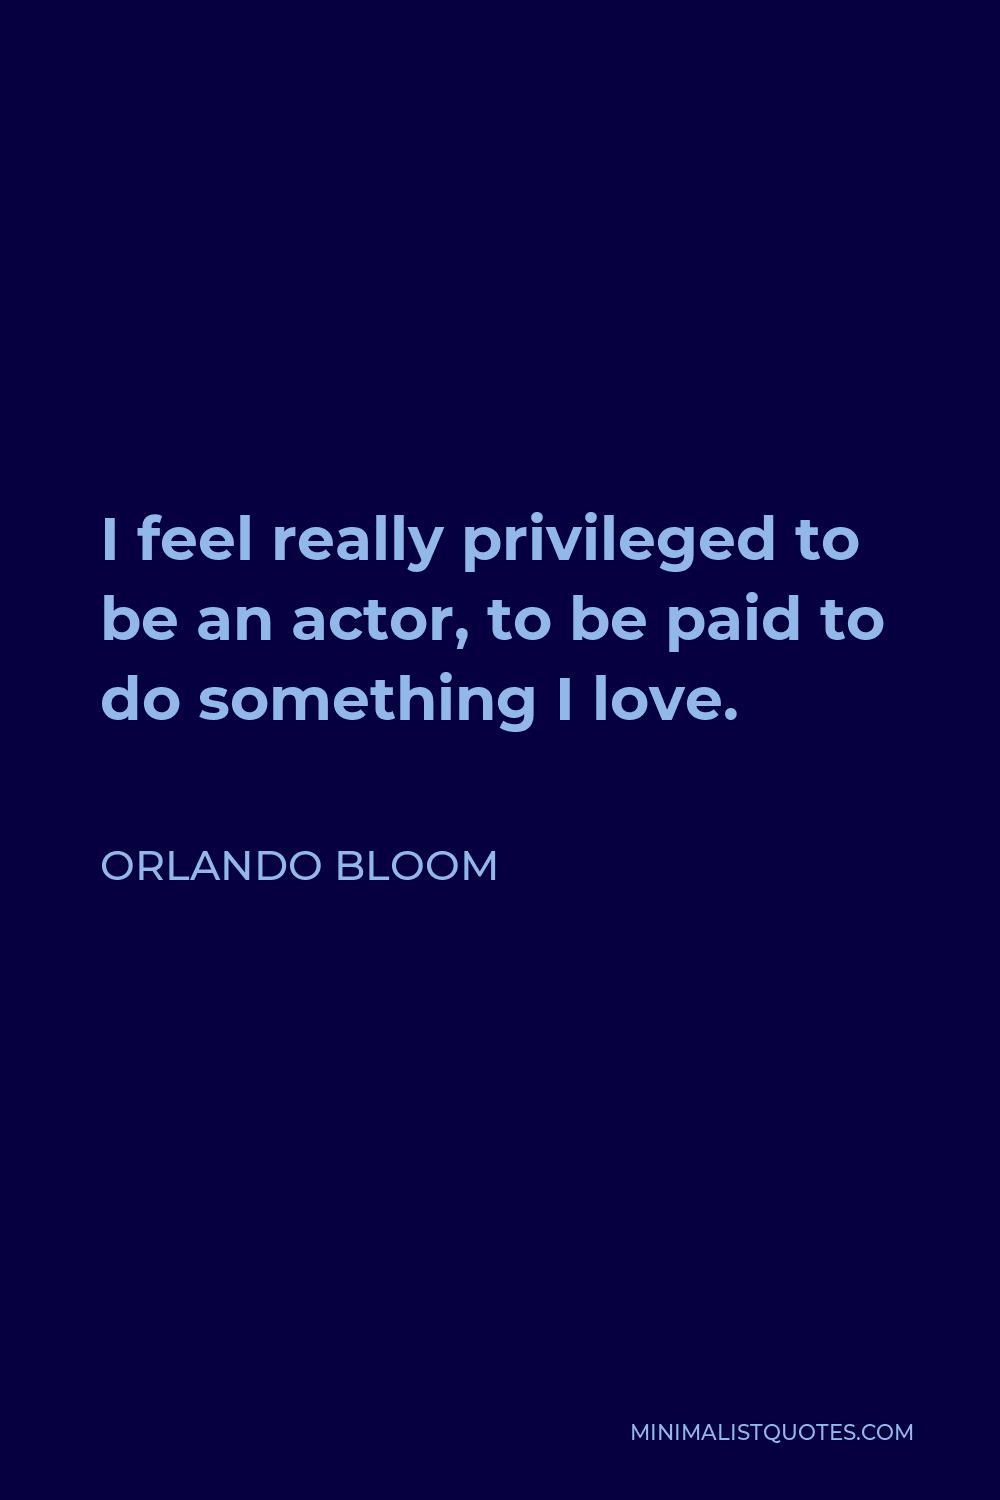 Orlando Bloom Quote - I feel really privileged to be an actor, to be paid to do something I love.